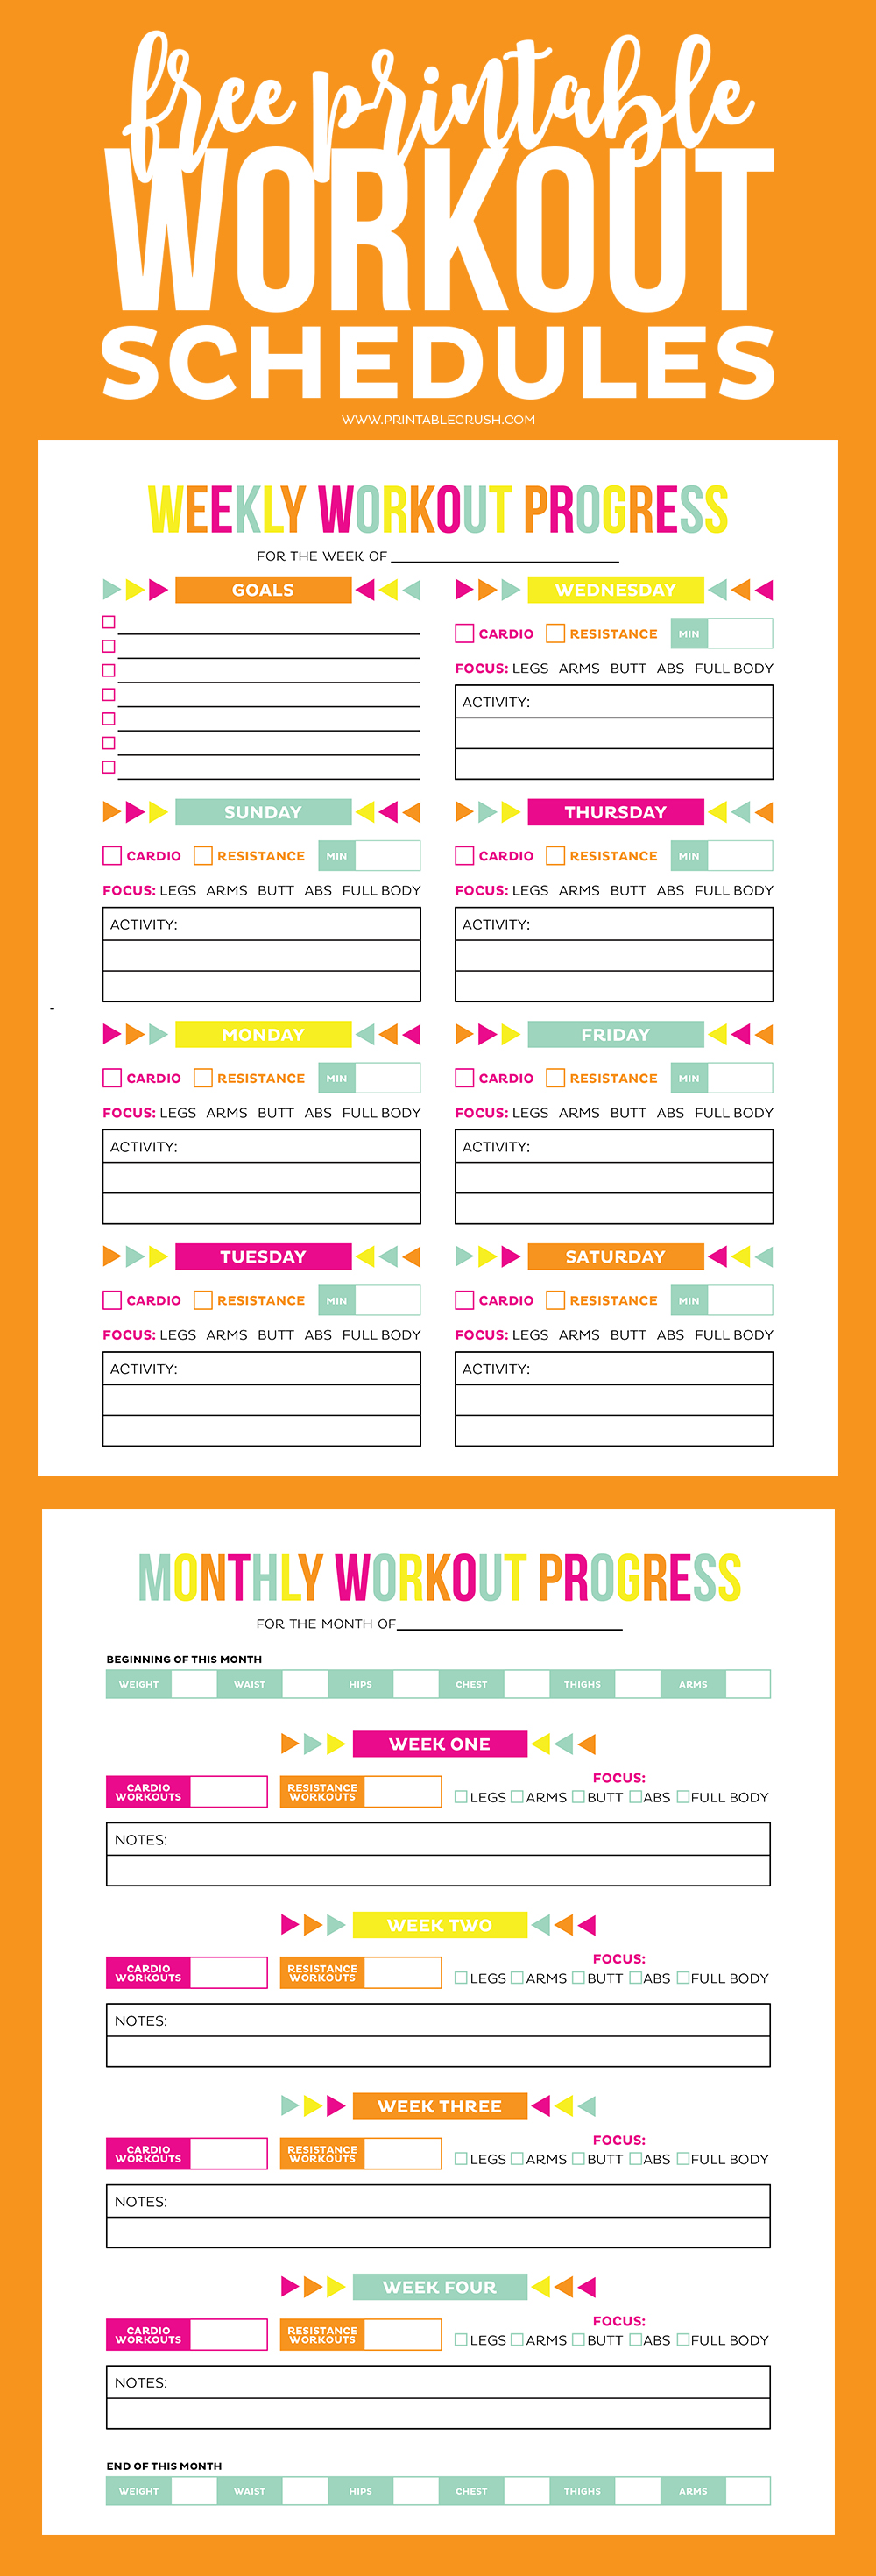 FREE Printable Workout Schedule - Printable Crush